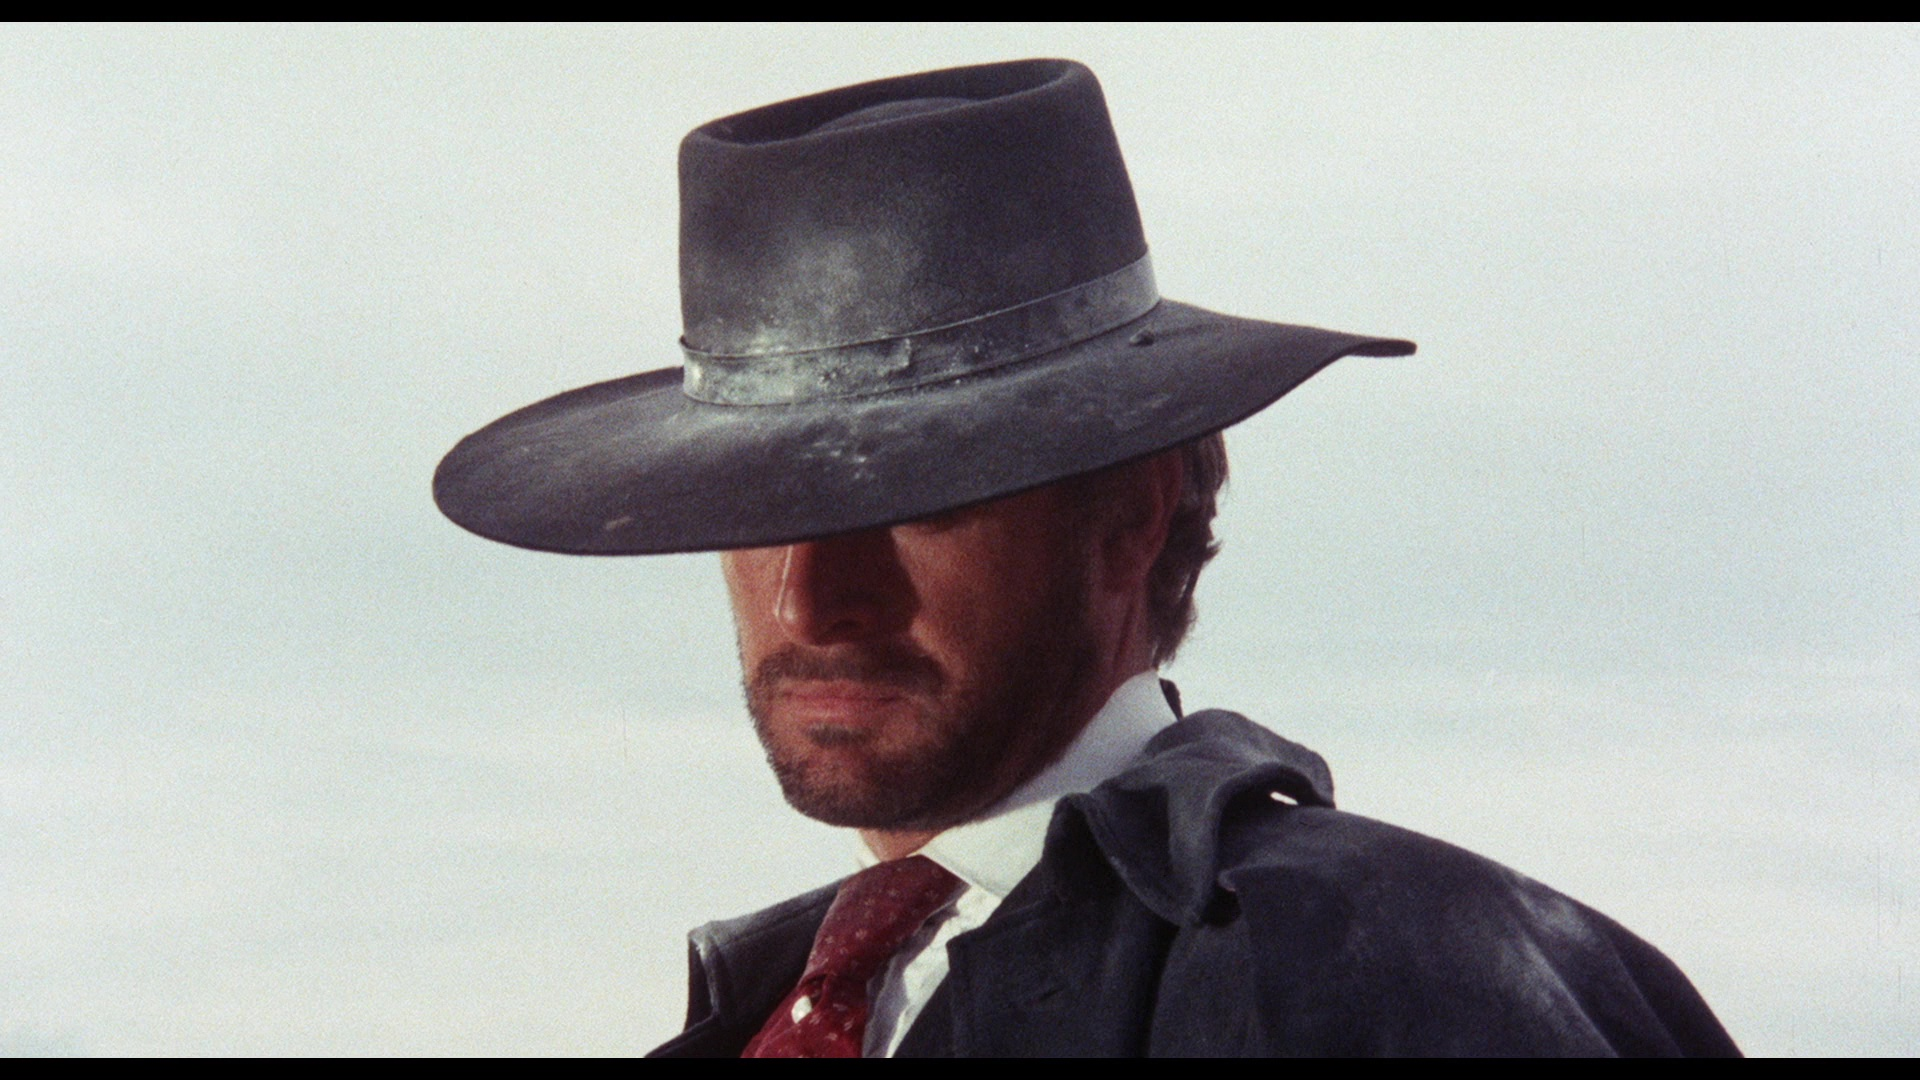 IF YOU MEET SARTANA... PRAY FOR YOUR DEATH